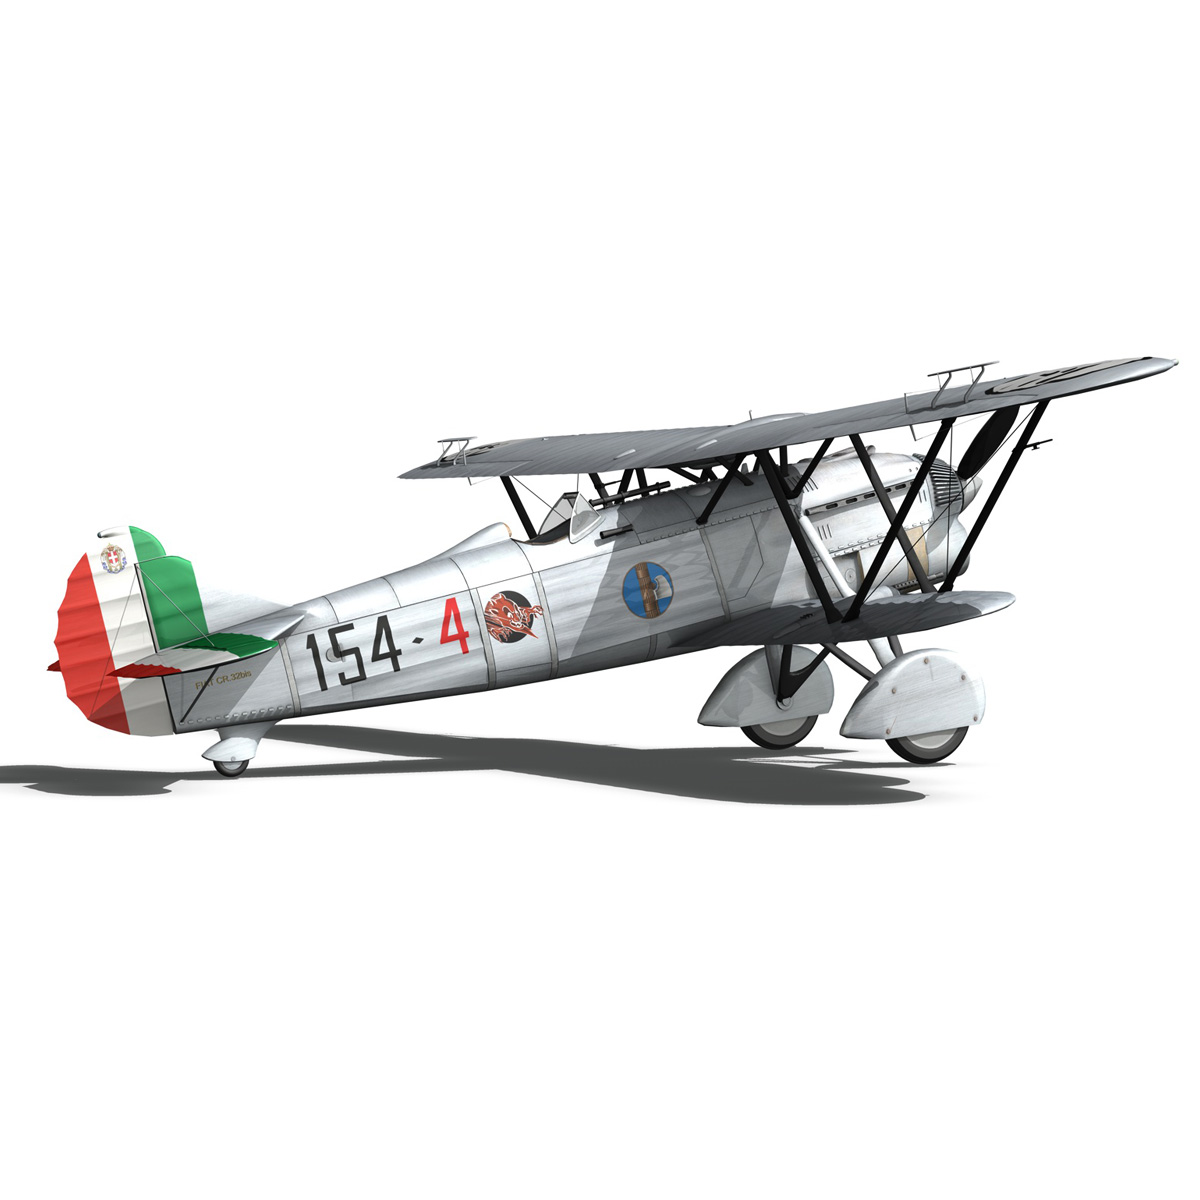 fiat cr.32 – italy airforce – 154 squadriglia 3d model fbx c4d lwo obj 268143